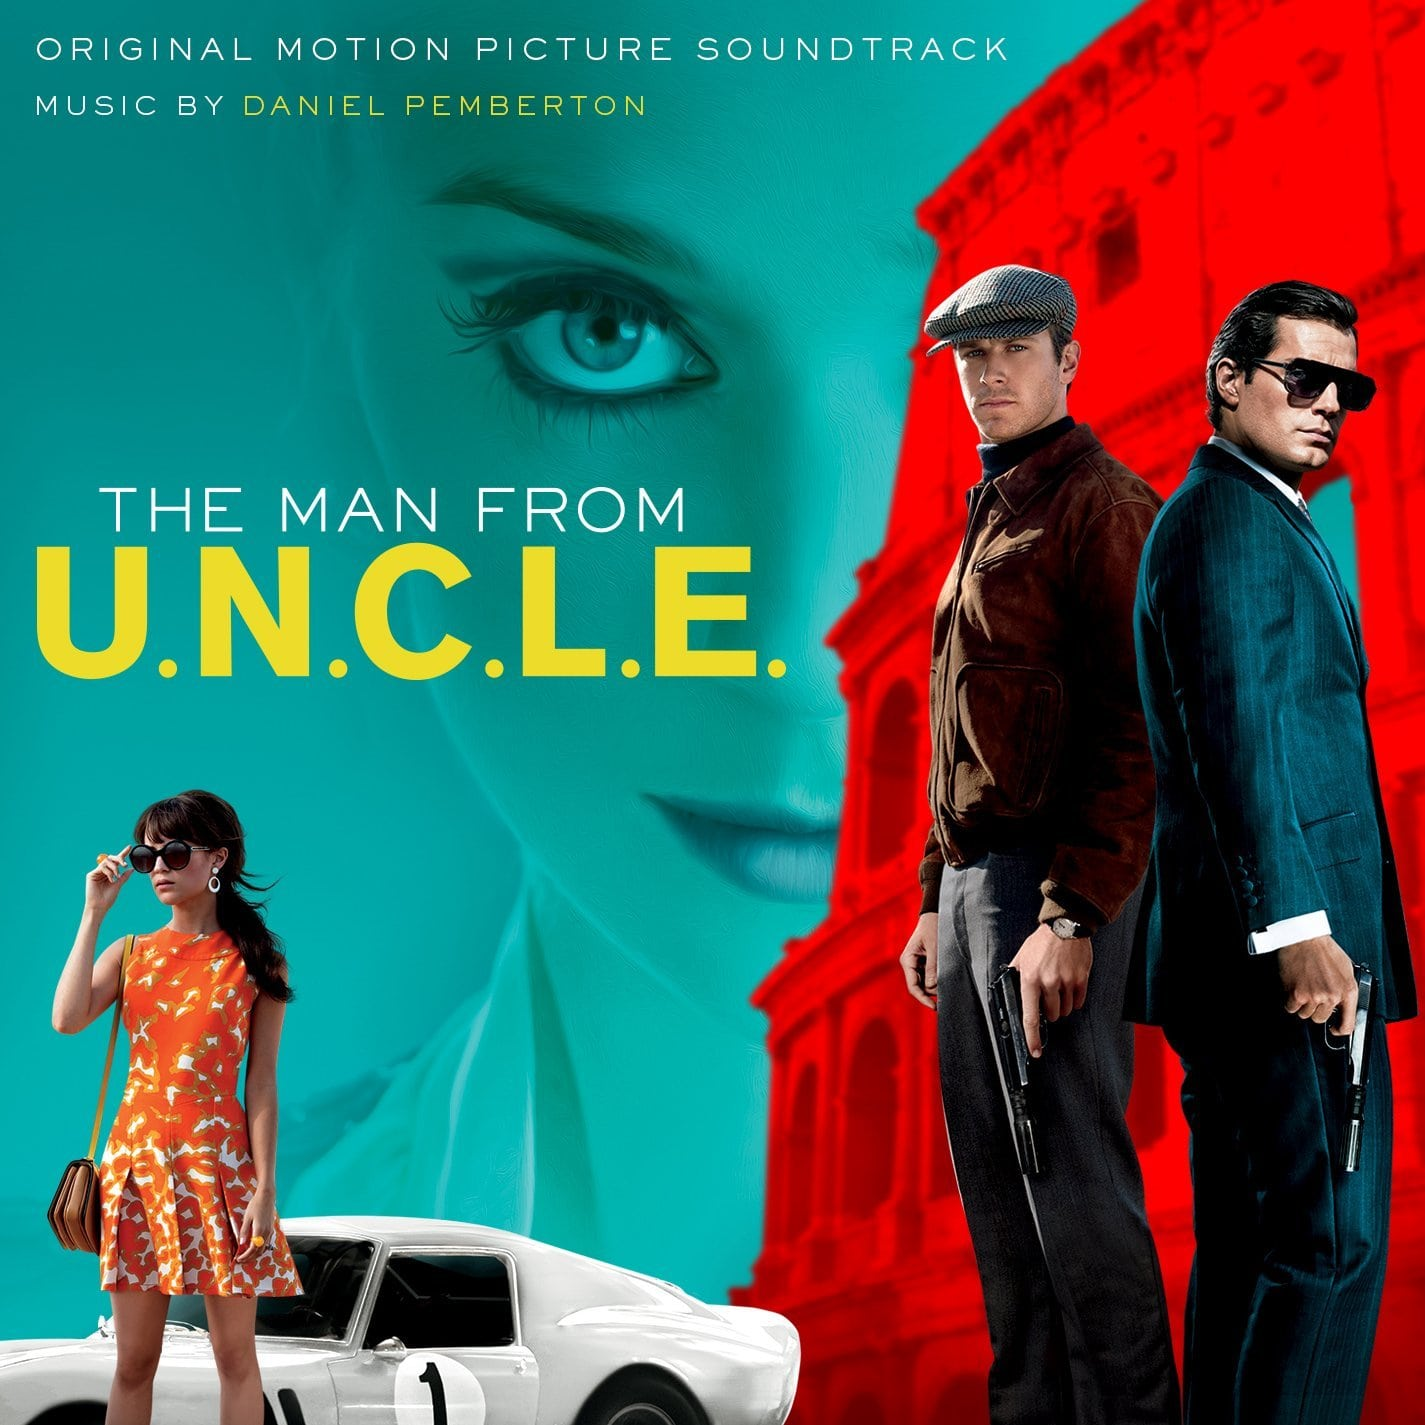 The Man from U.N.C.L.E. Backgrounds